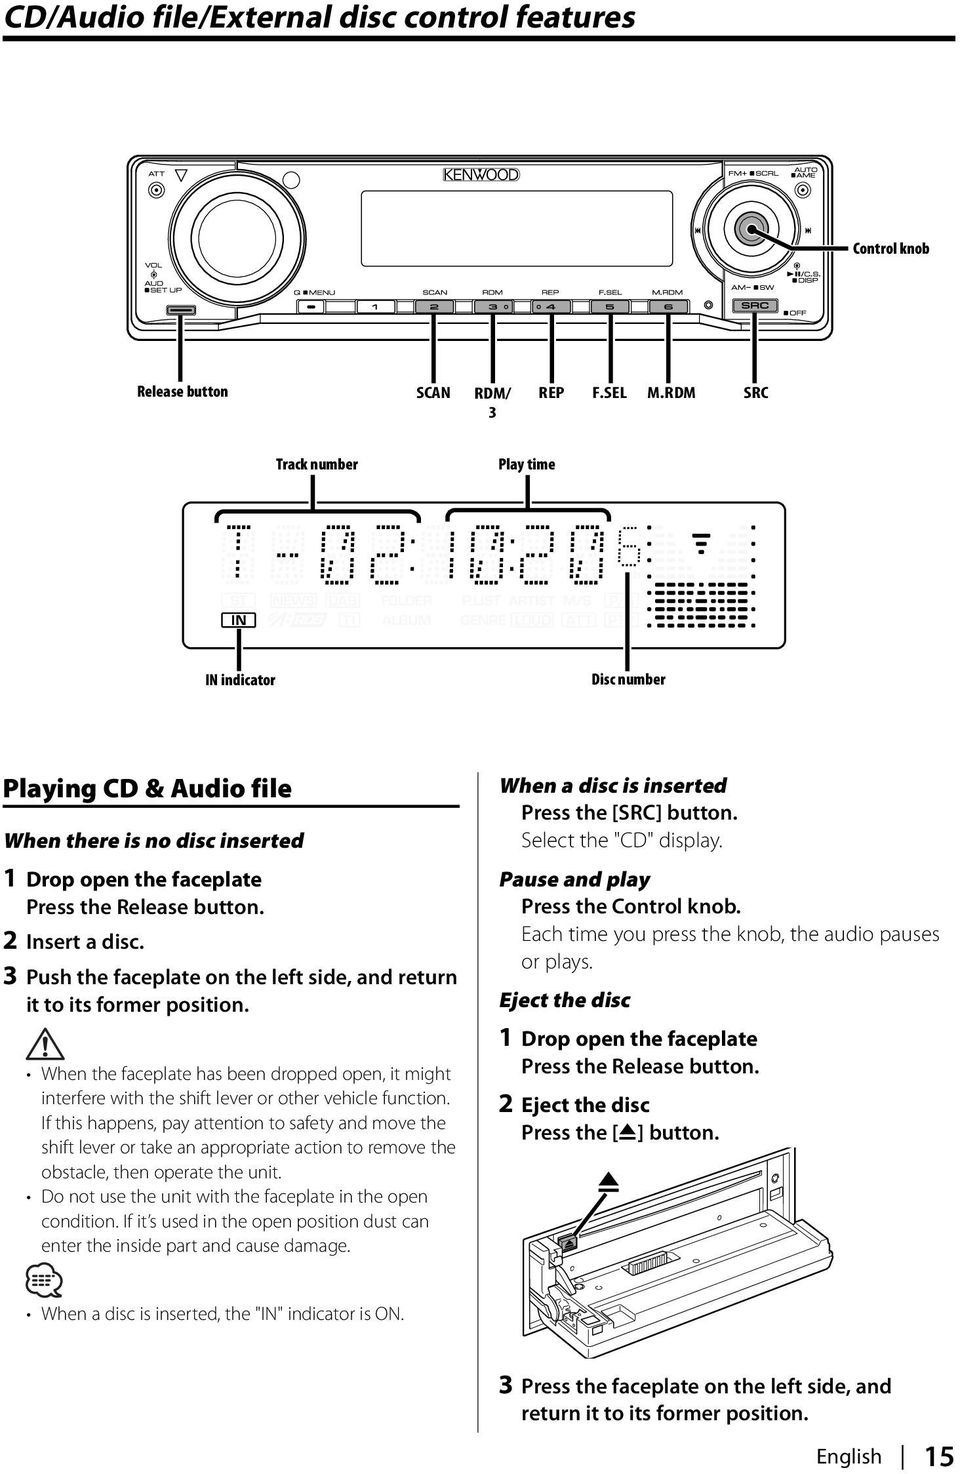 Kdc Mp4032 Mp332 Pdf Kenwood Wiring Diagram 3 Push The Faceplate On Left Side And Return It To Its Former Position